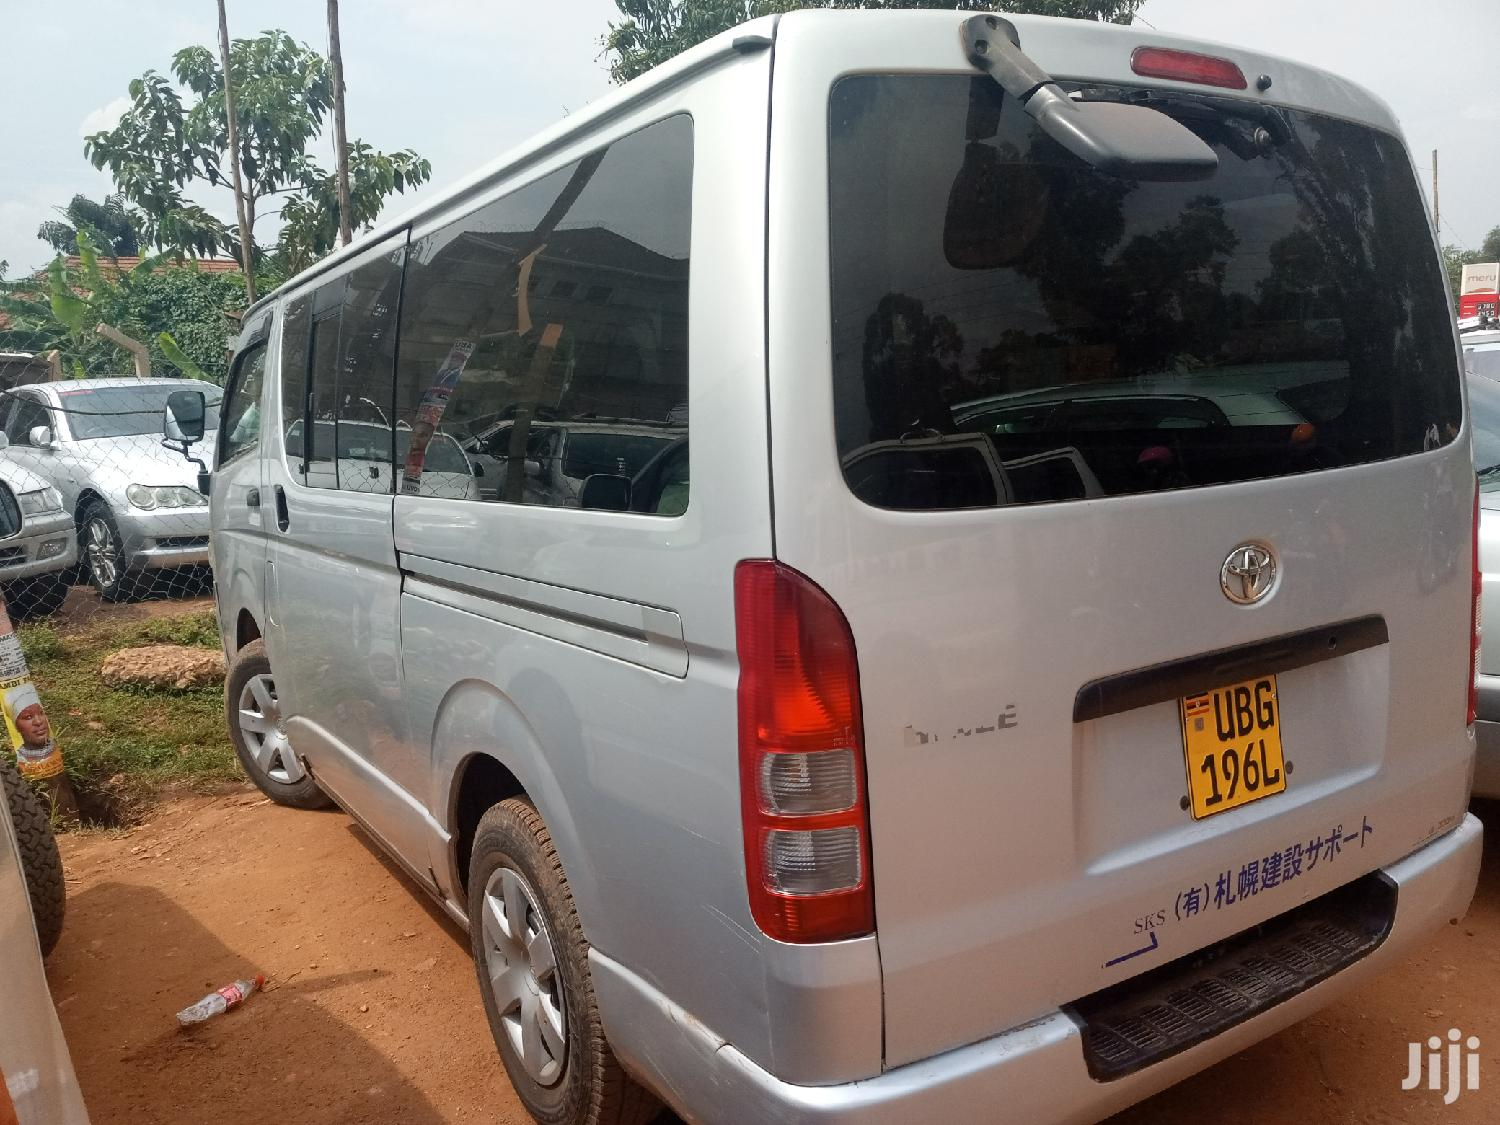 Toyota Hiace 2009 | Buses & Microbuses for sale in Kampala, Central Region, Uganda